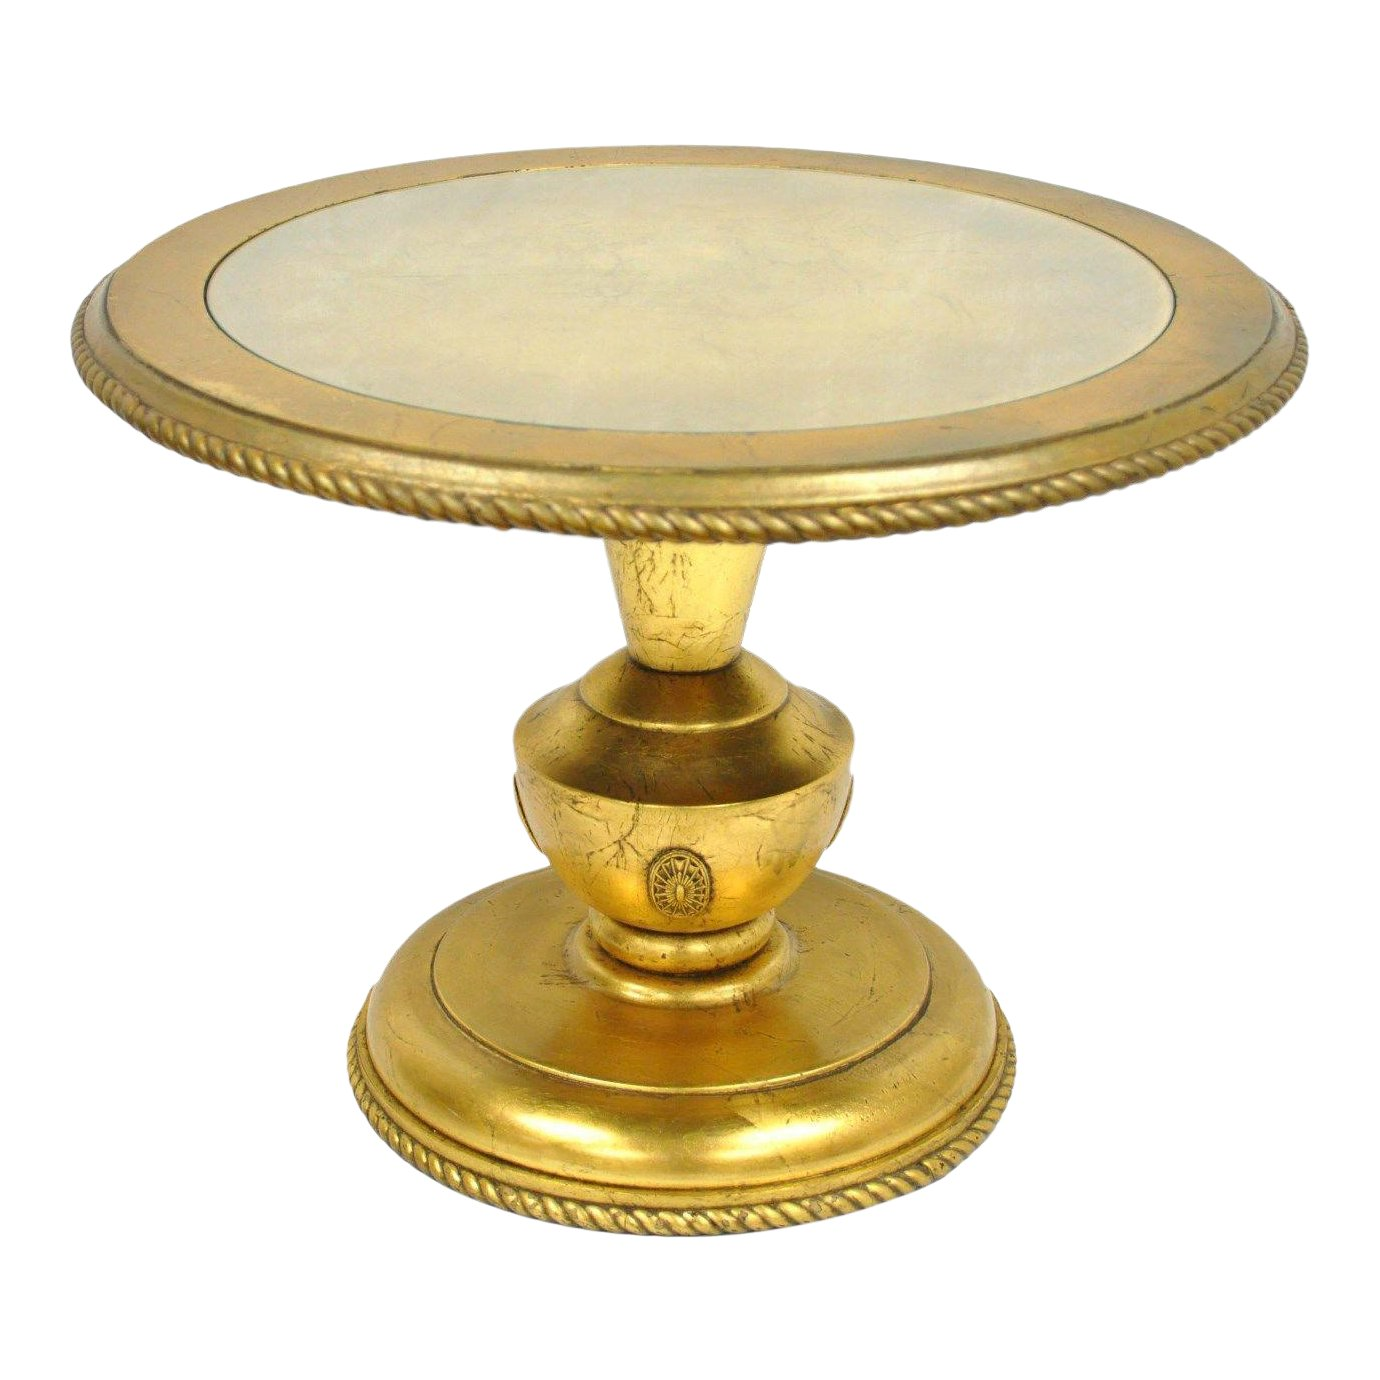 vintage hollywood regency french style gold gilt wood urn side accent end table chairish stools bunnings small outdoor bench home decor mirrors coffee with power nesting glass